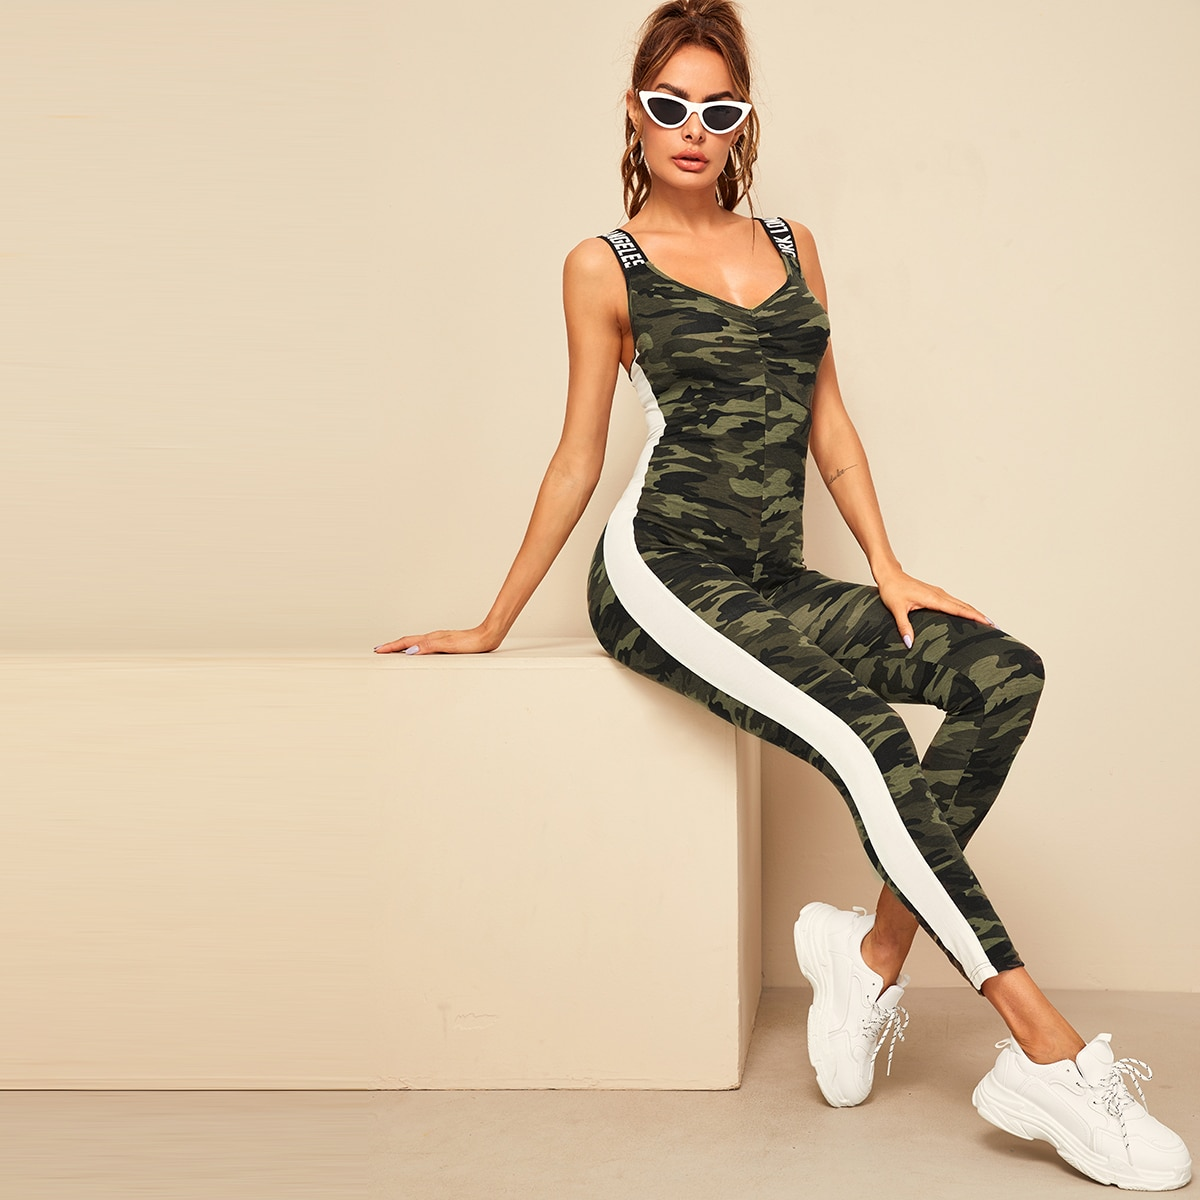 SHEIN coupon: Letter Tape Striped Side Camo Jumpsuit